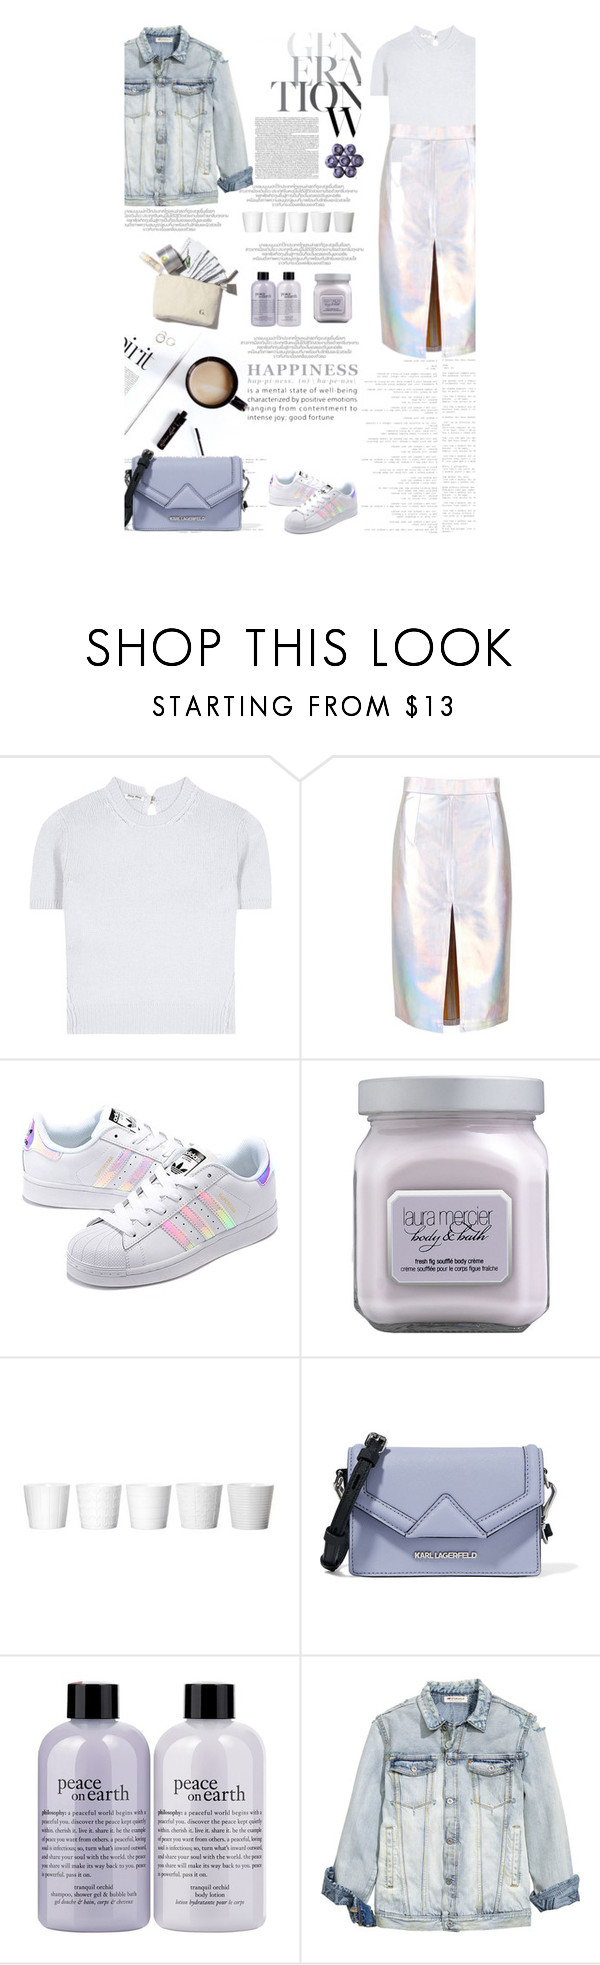 """Untitled #2588"" by amimcqueen ❤ liked on Polyvore featuring Miu Miu, adidas Originals, Laura Mercier, Karl Lagerfeld and philosophy"